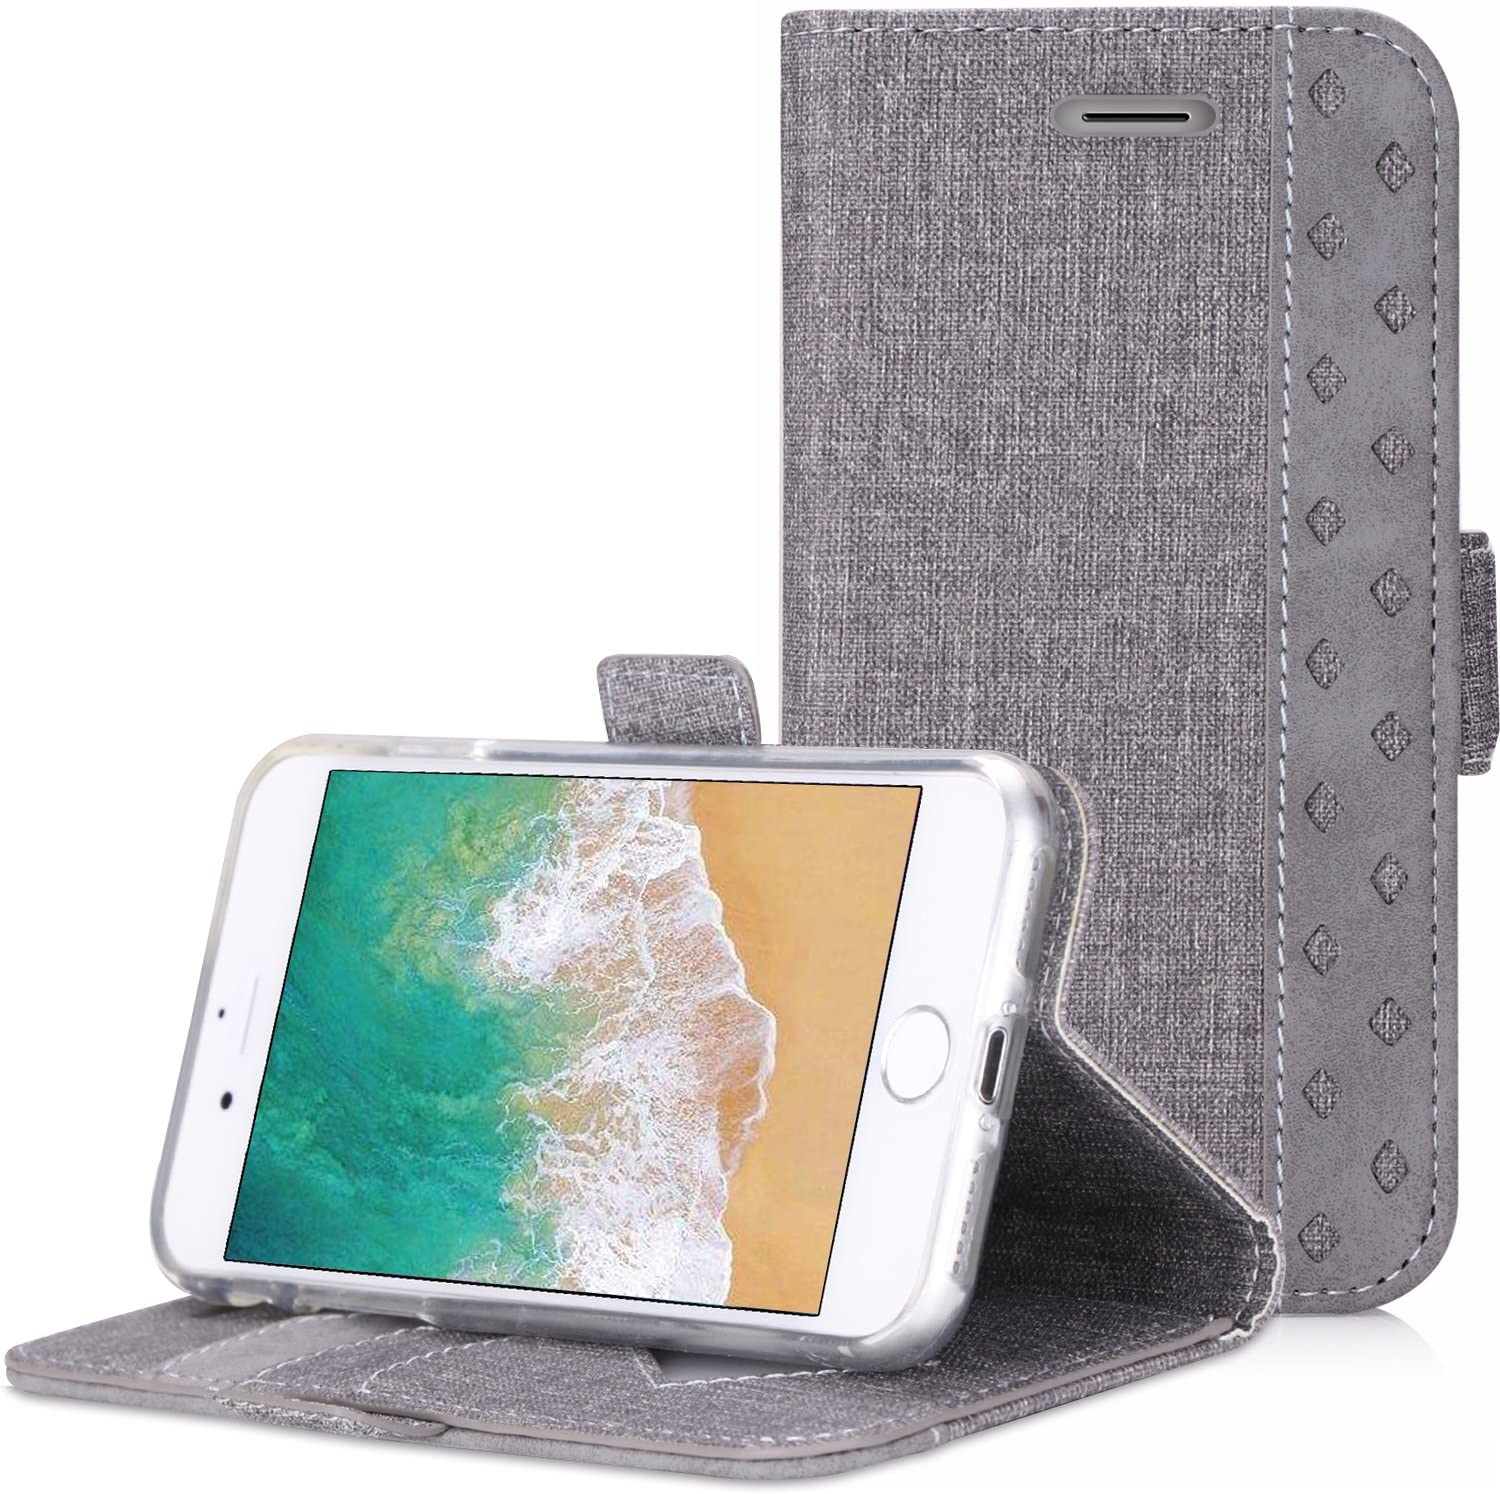 ProCase iPhone SE 2020 / iPhone 8 / iPhone 7 Wallet Case, Folio Folding Wallet Case Flip Cover Protective Case for 4.7-inch iPhone SE 2020 / iPhone 8 / iPhone 7, with Card Slots and Kickstand -Gray